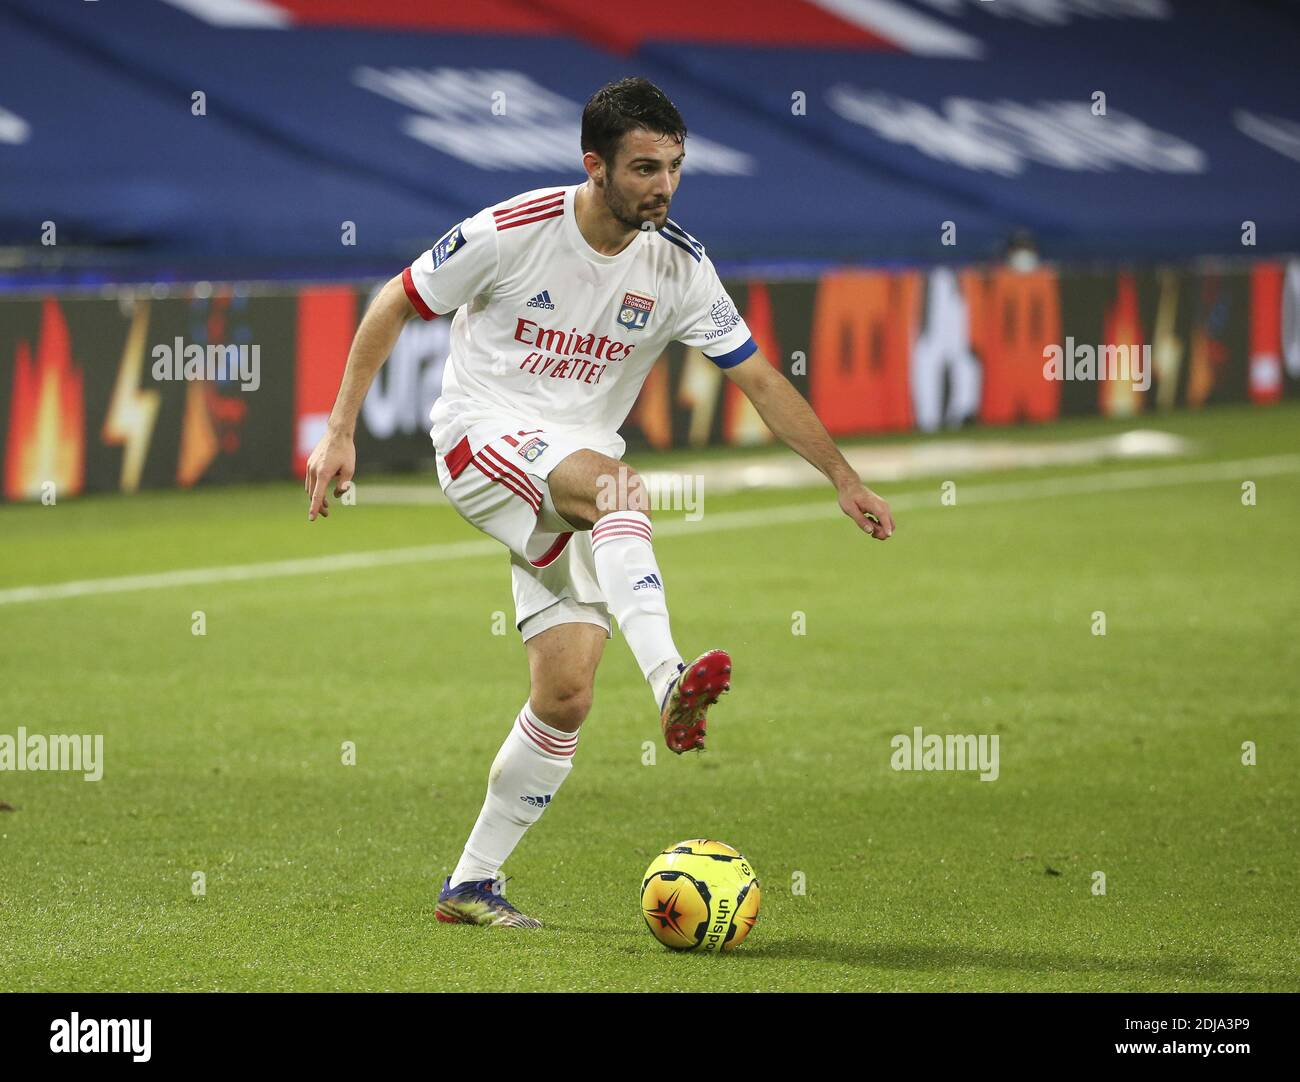 Page 3 - Parc Olympique Lyonnais High Resolution Stock Photography ...